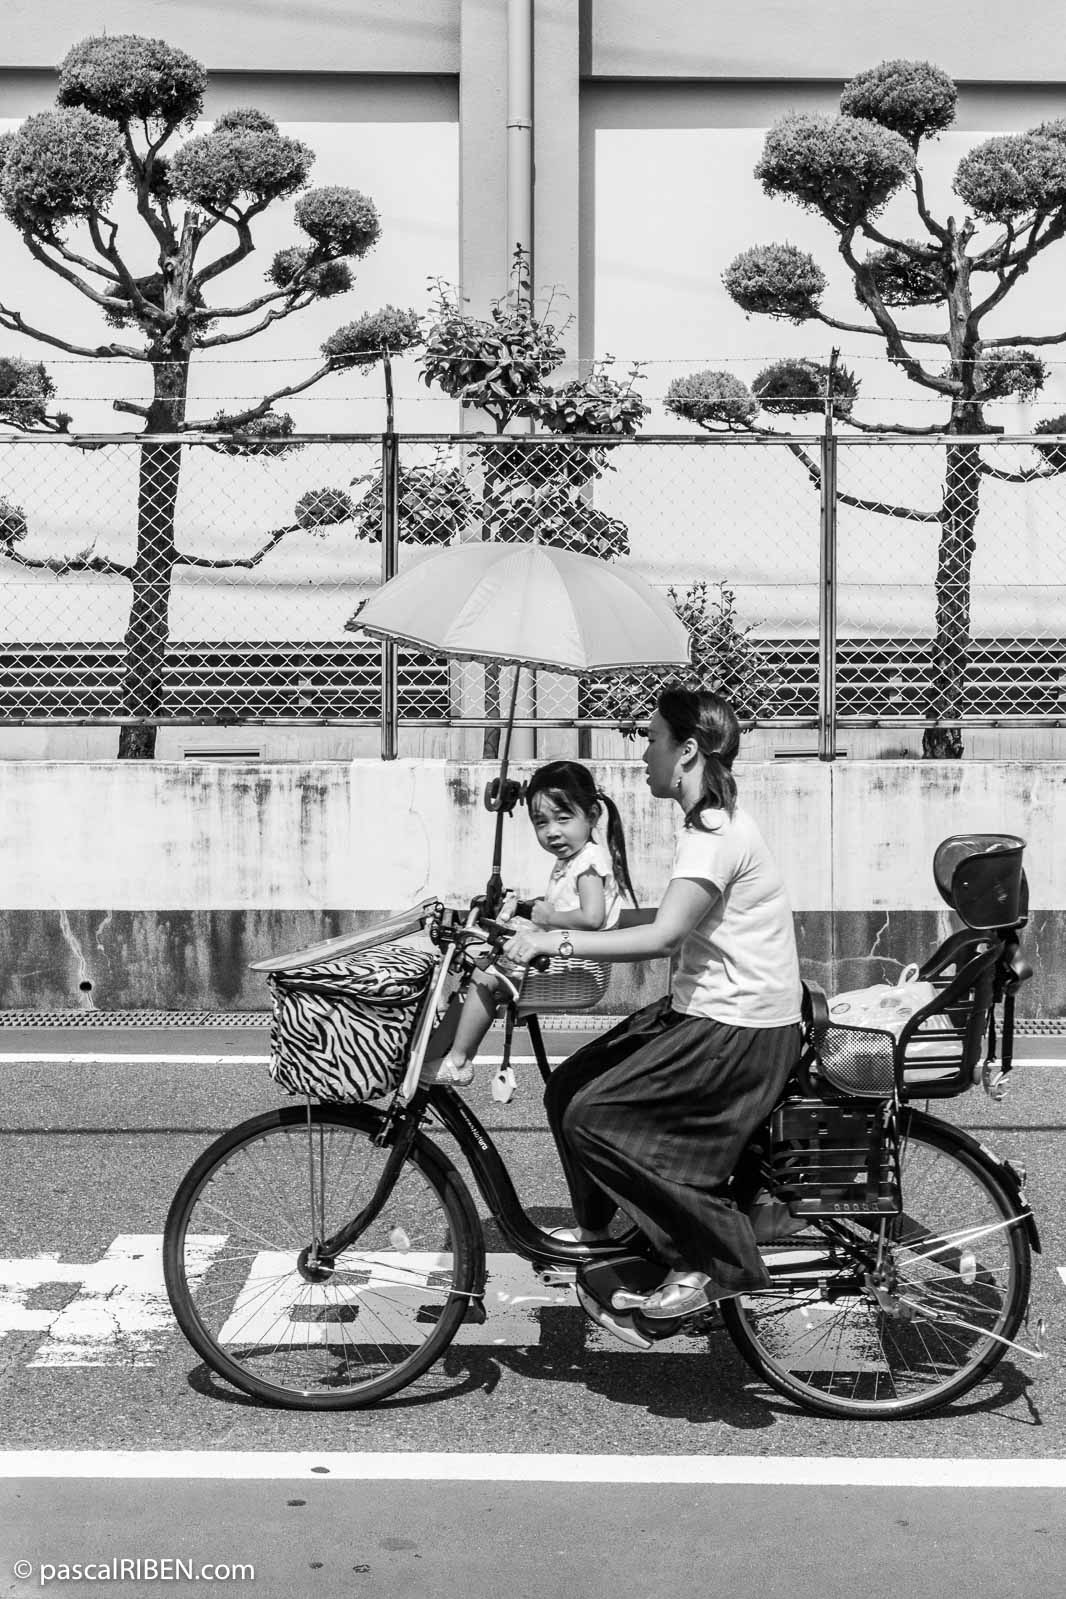 Mother and daughter on Bicycle, Daito, Japan, 2018